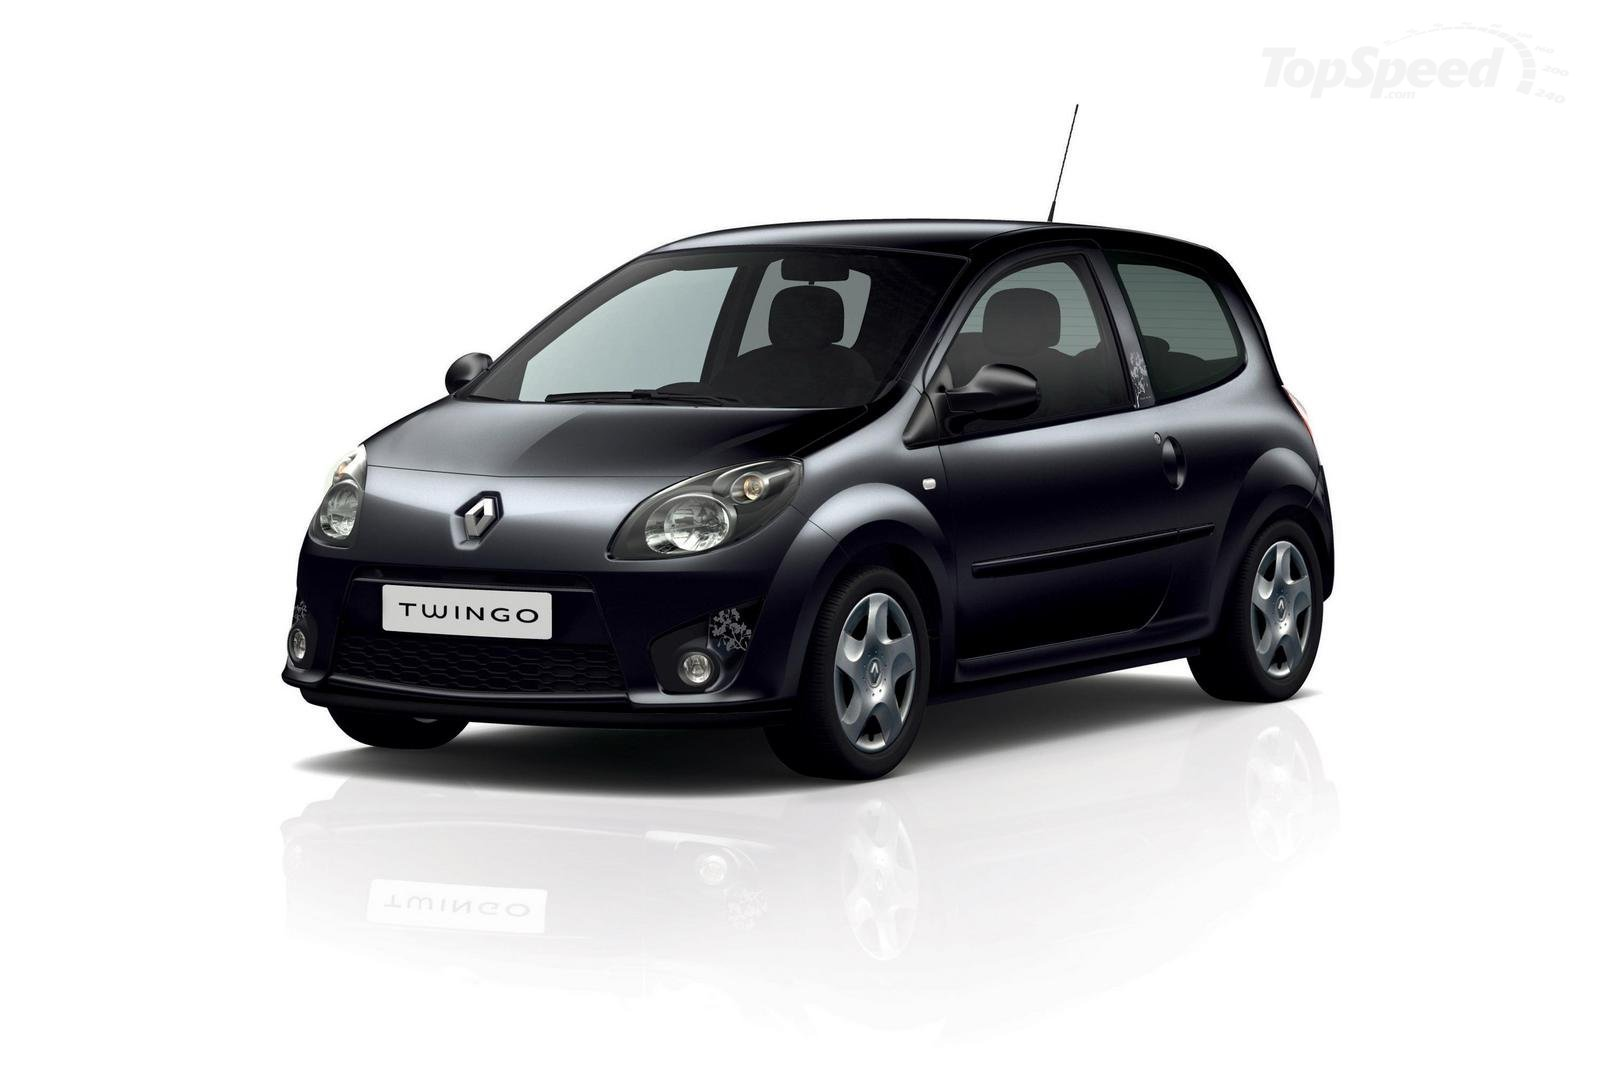 2008 renault twingo partsopen. Black Bedroom Furniture Sets. Home Design Ideas